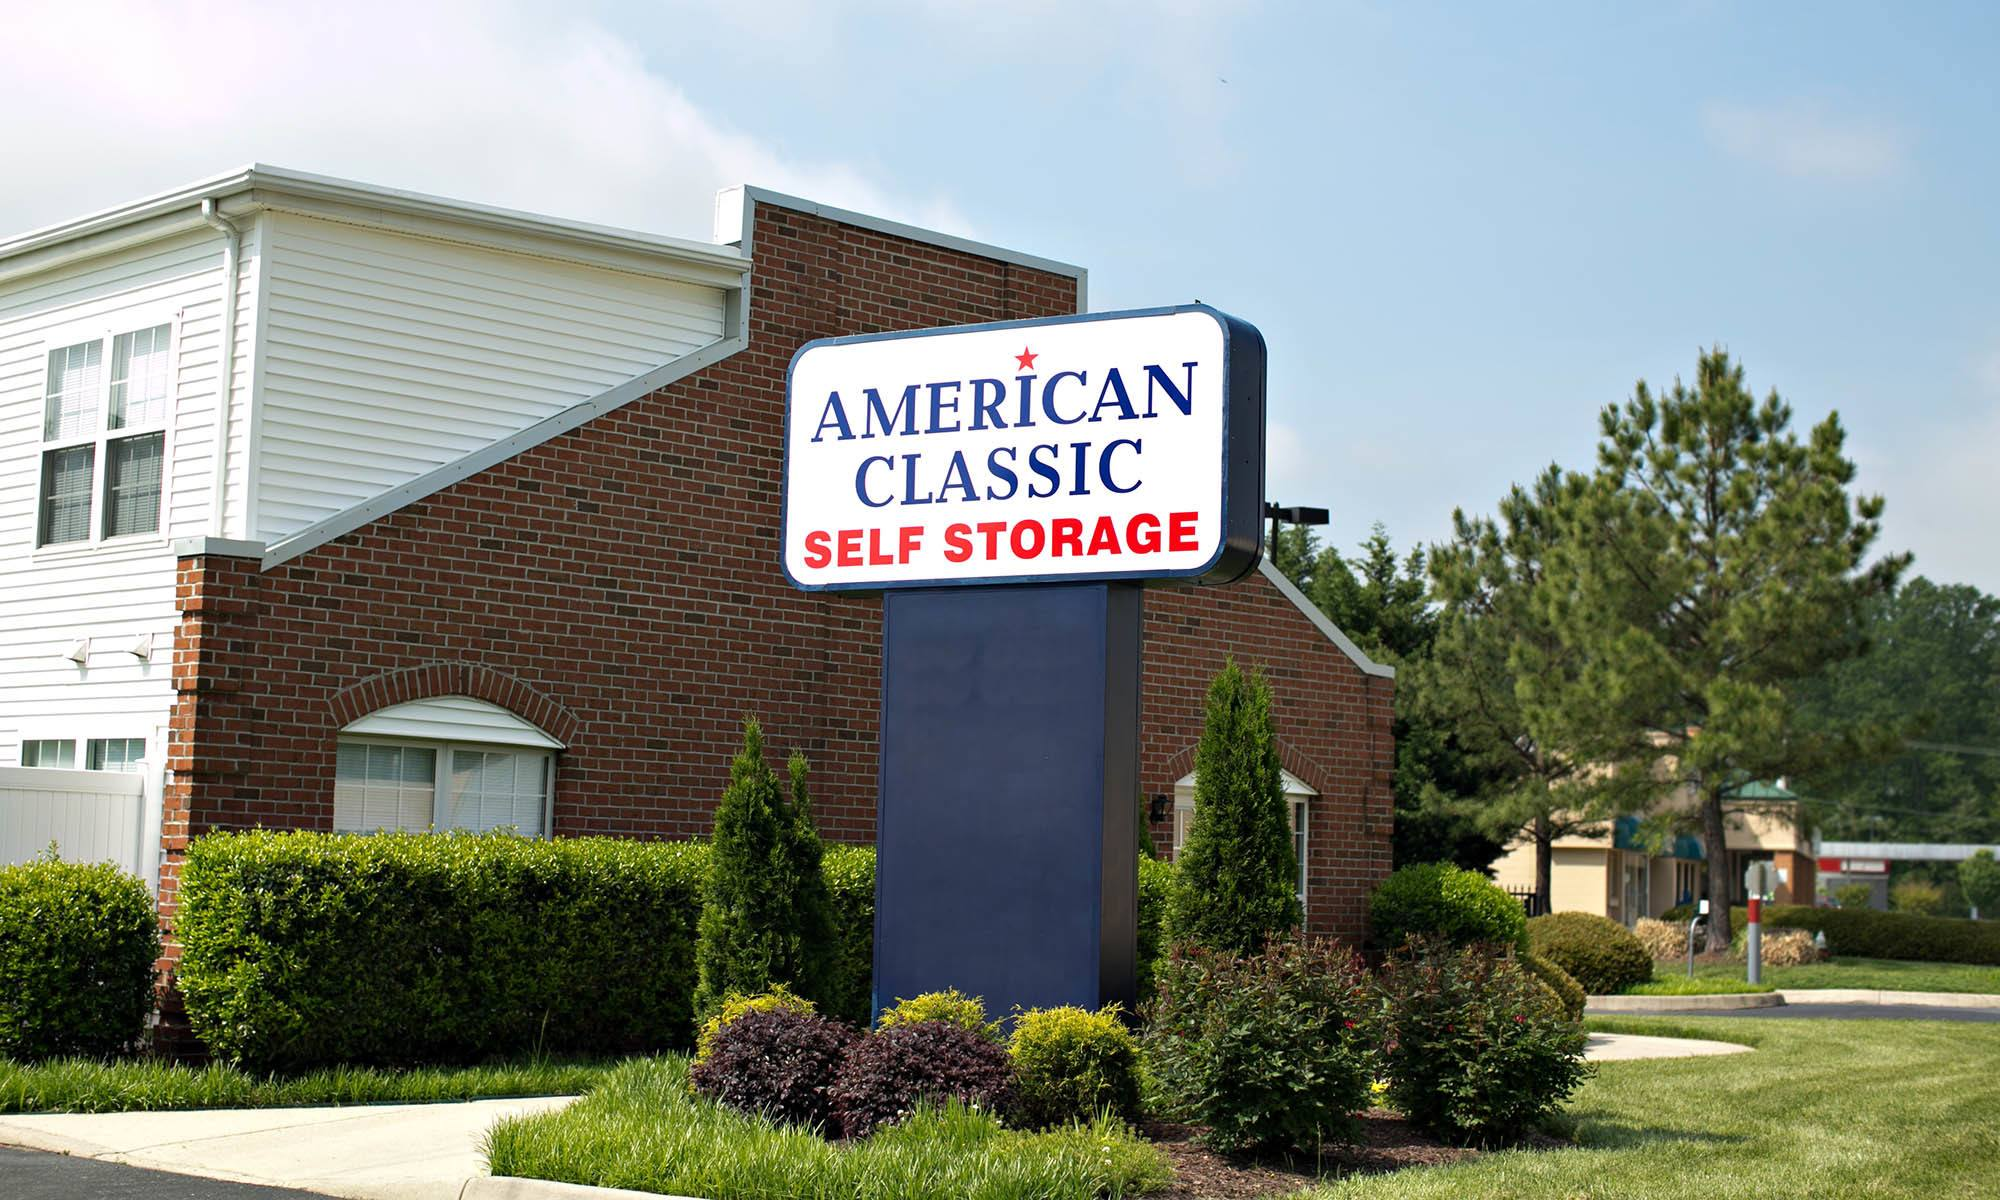 Williamsburg storage best storage design 2017 for American classic storage